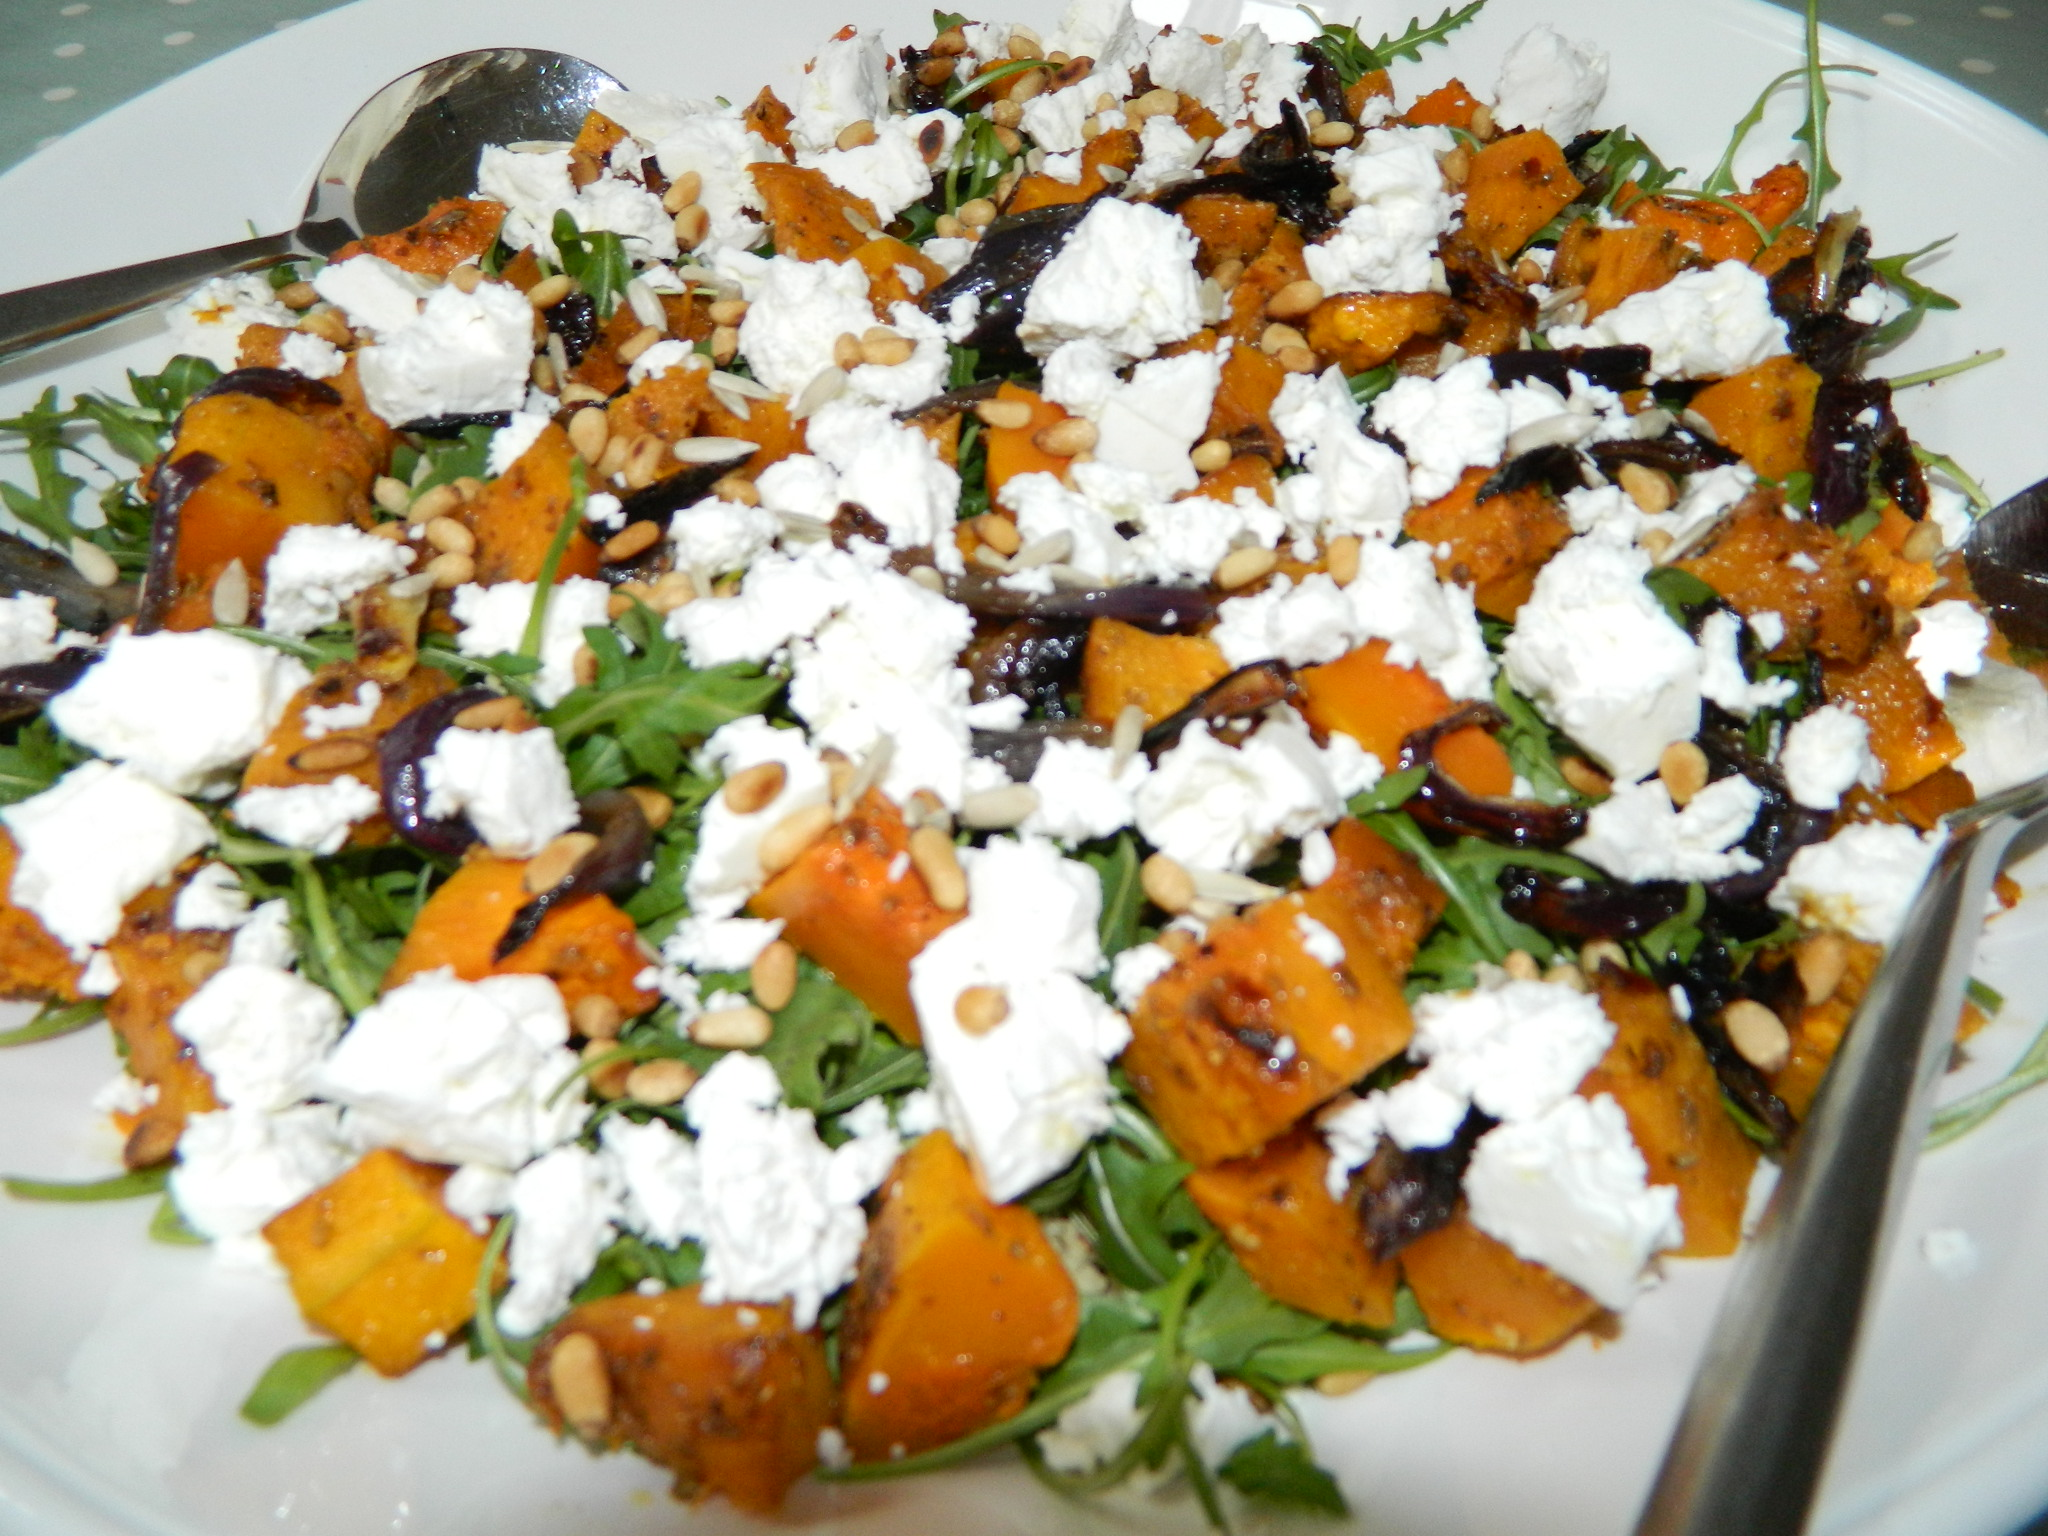 Moroccan butternut squash and couscous salad